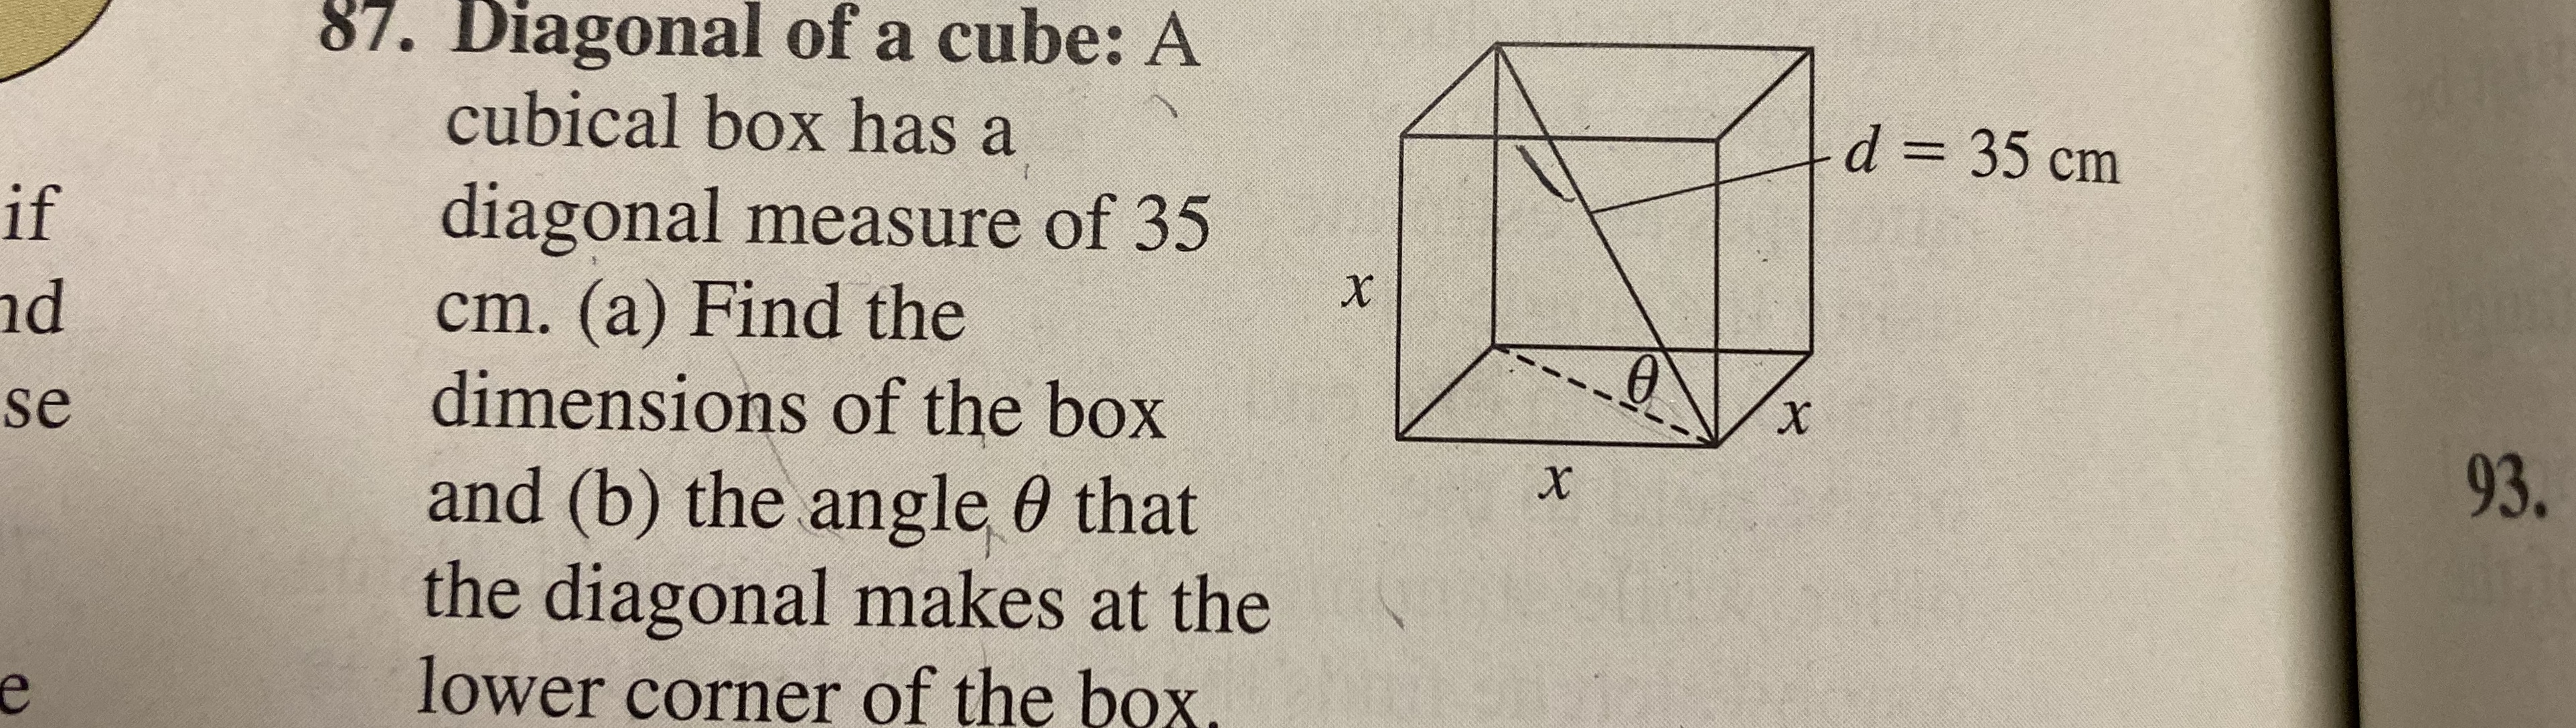 87. Diagonal of a cube: A cubical box has a diagonal measure of 35 cm. (a) Find the dimensions of the box and (b) the angle 0 that the diagonal makes at the lower corner of the box. d 35 cm if d se 93.